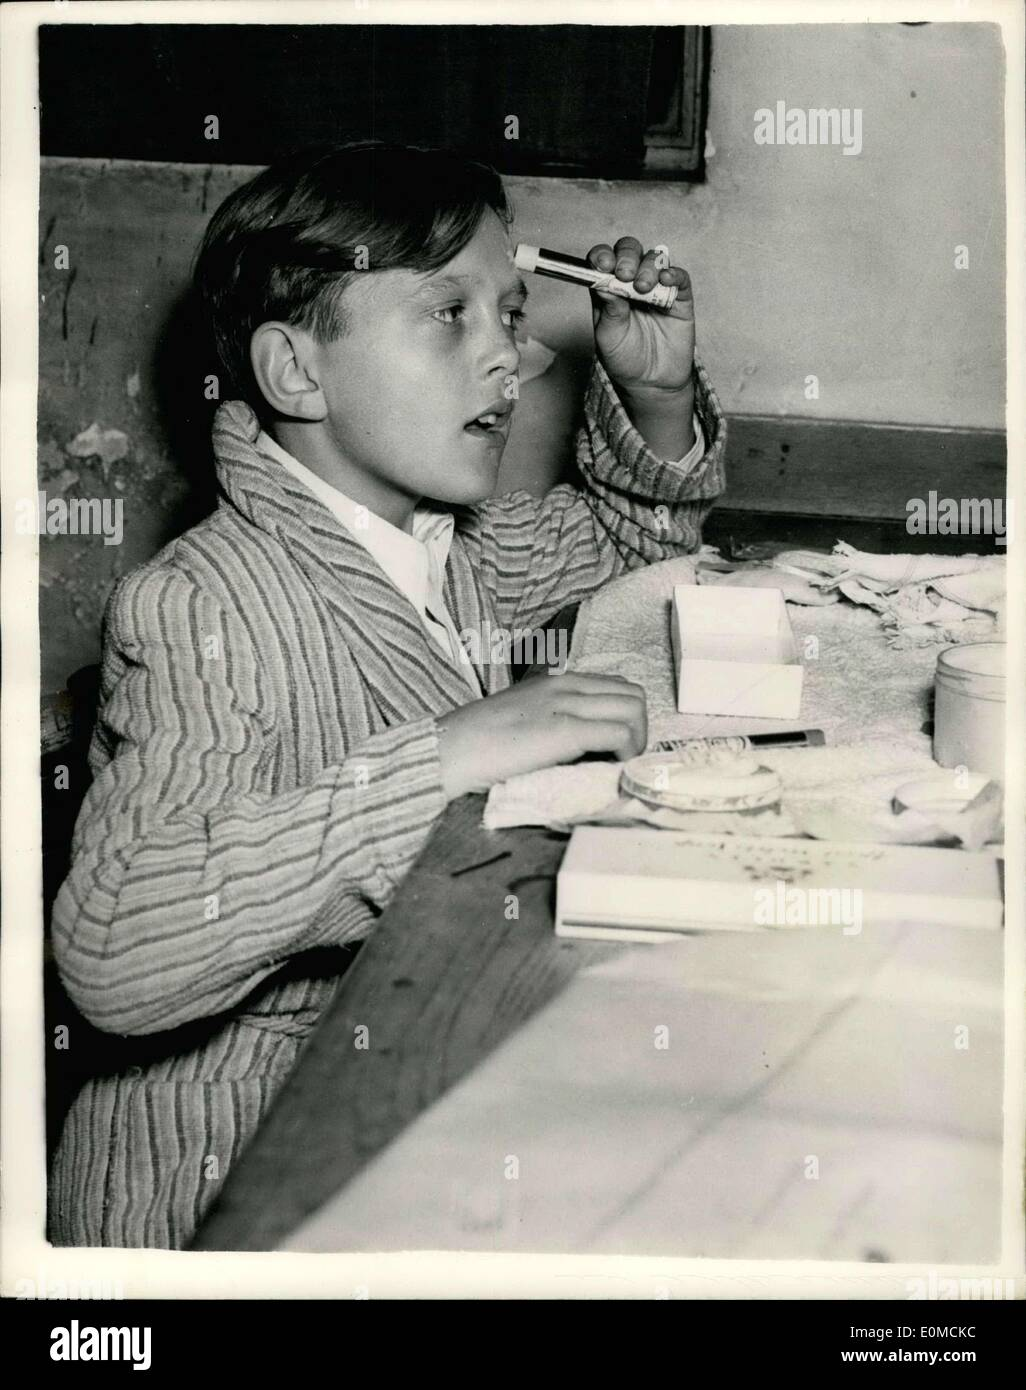 oct-07-1954-boy-opera-star-photo-shows-1